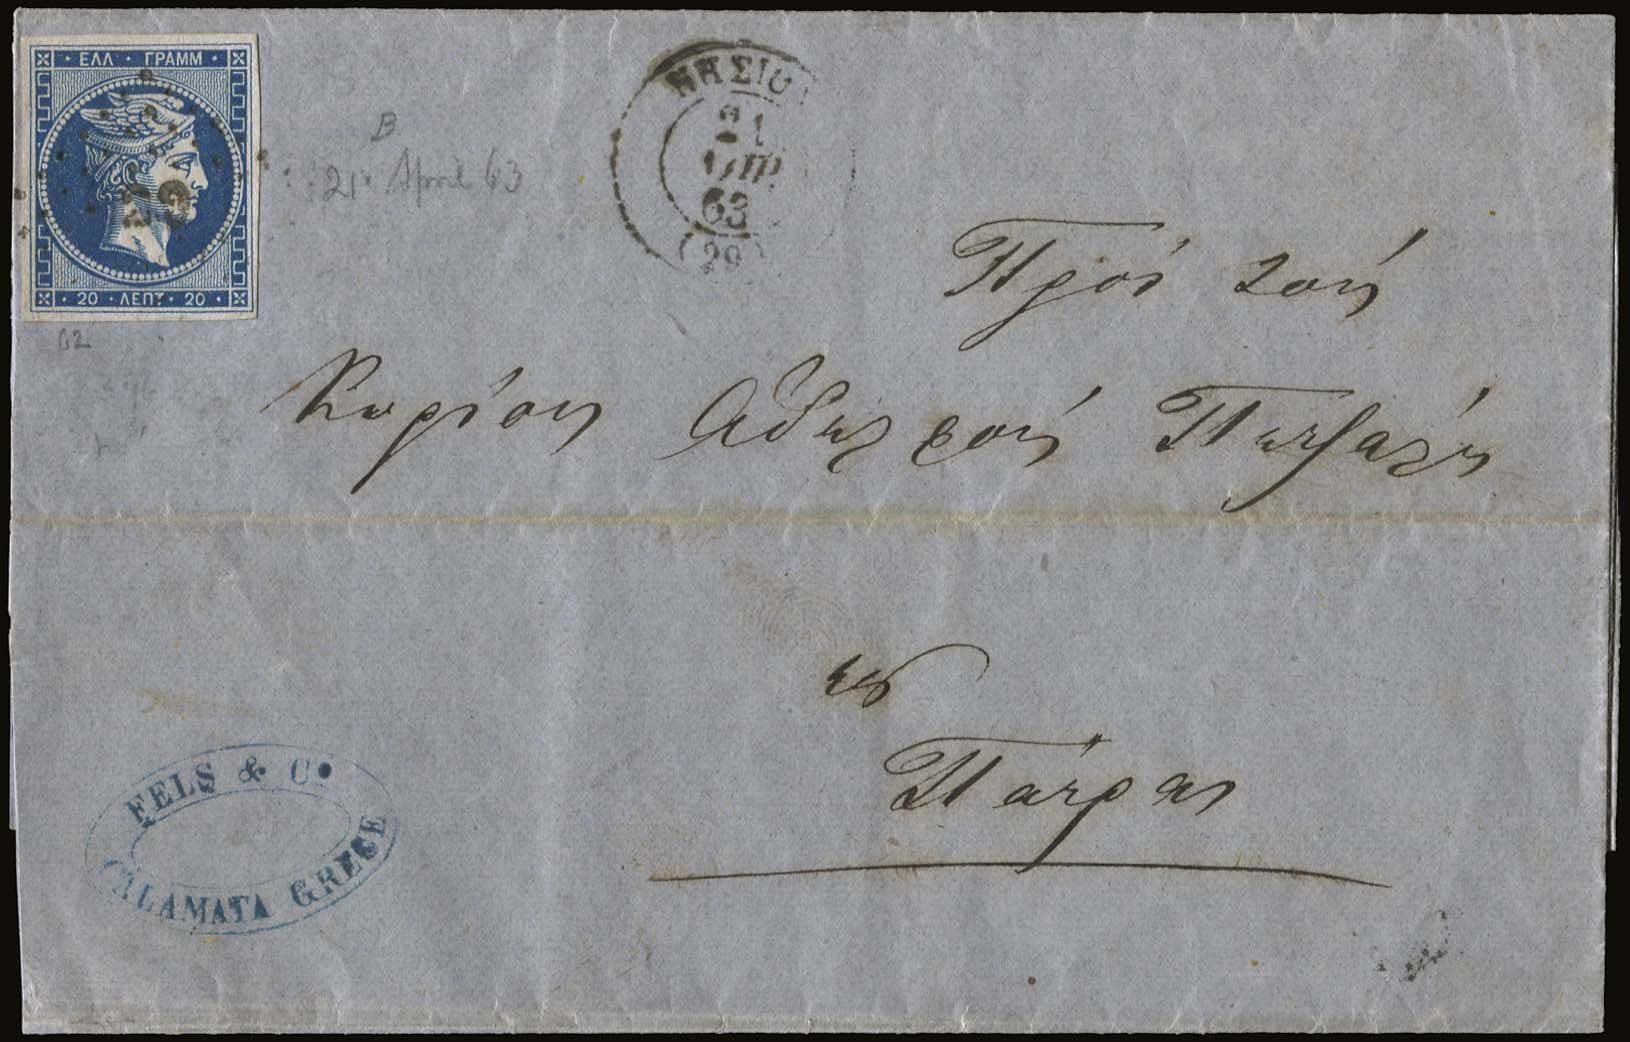 Lot 73 - -  LARGE HERMES HEAD 1862/67 consecutive athens printings -  A. Karamitsos Public Auction 645 General Stamp Sale